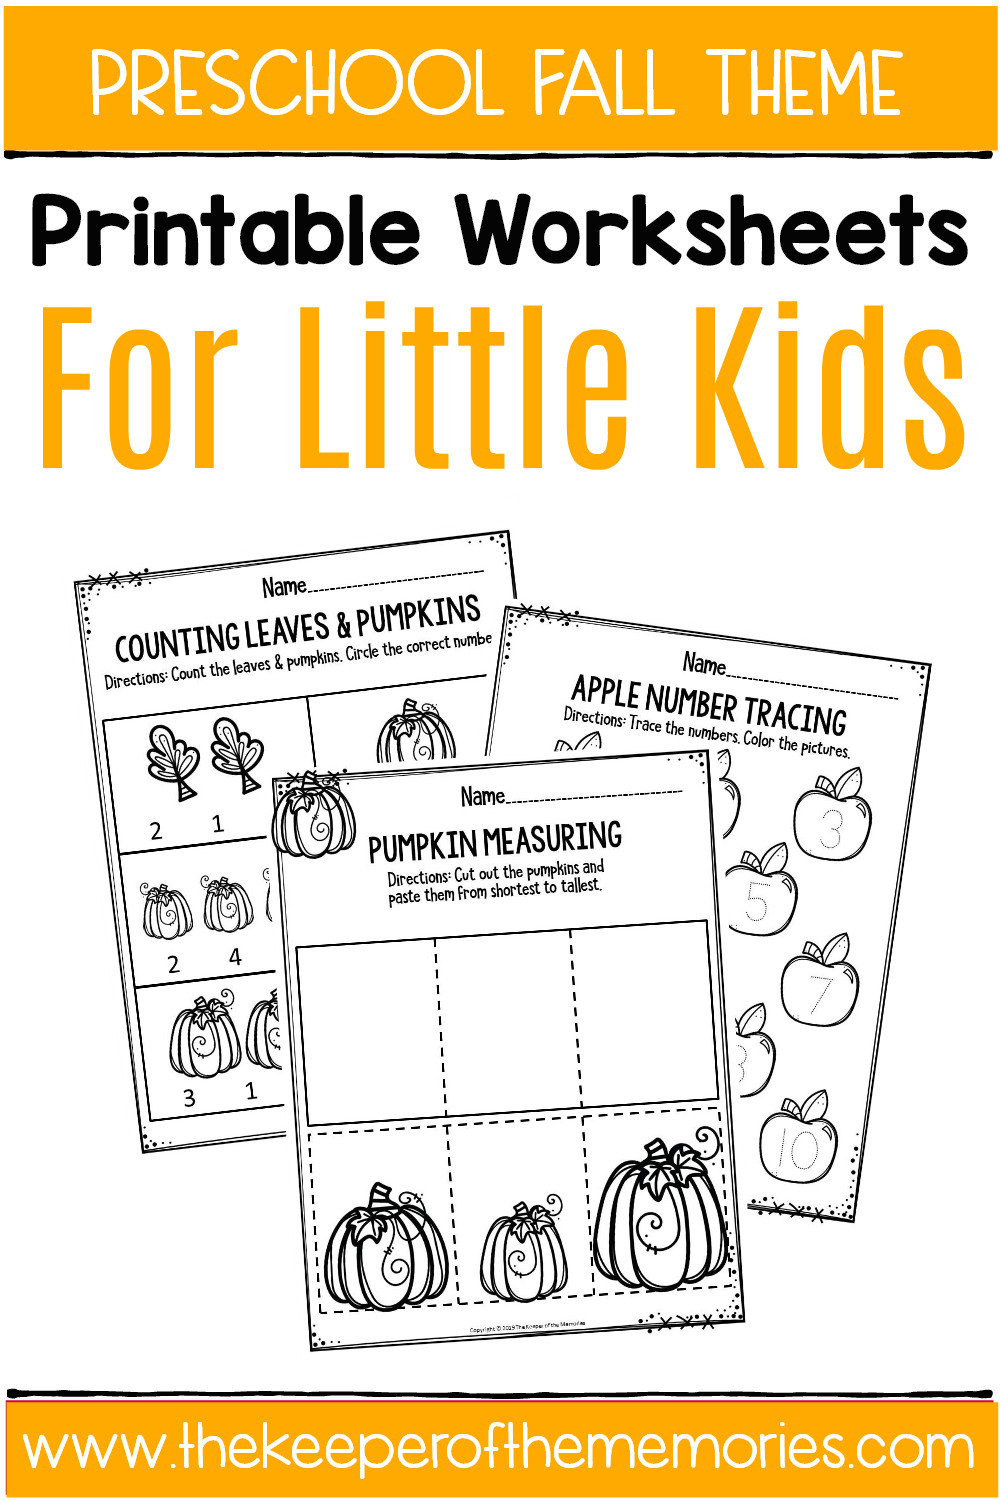 Printable Cutting Worksheets for Preschoolers Fall Printable Preschool Worksheets the Keeper Of the Memories